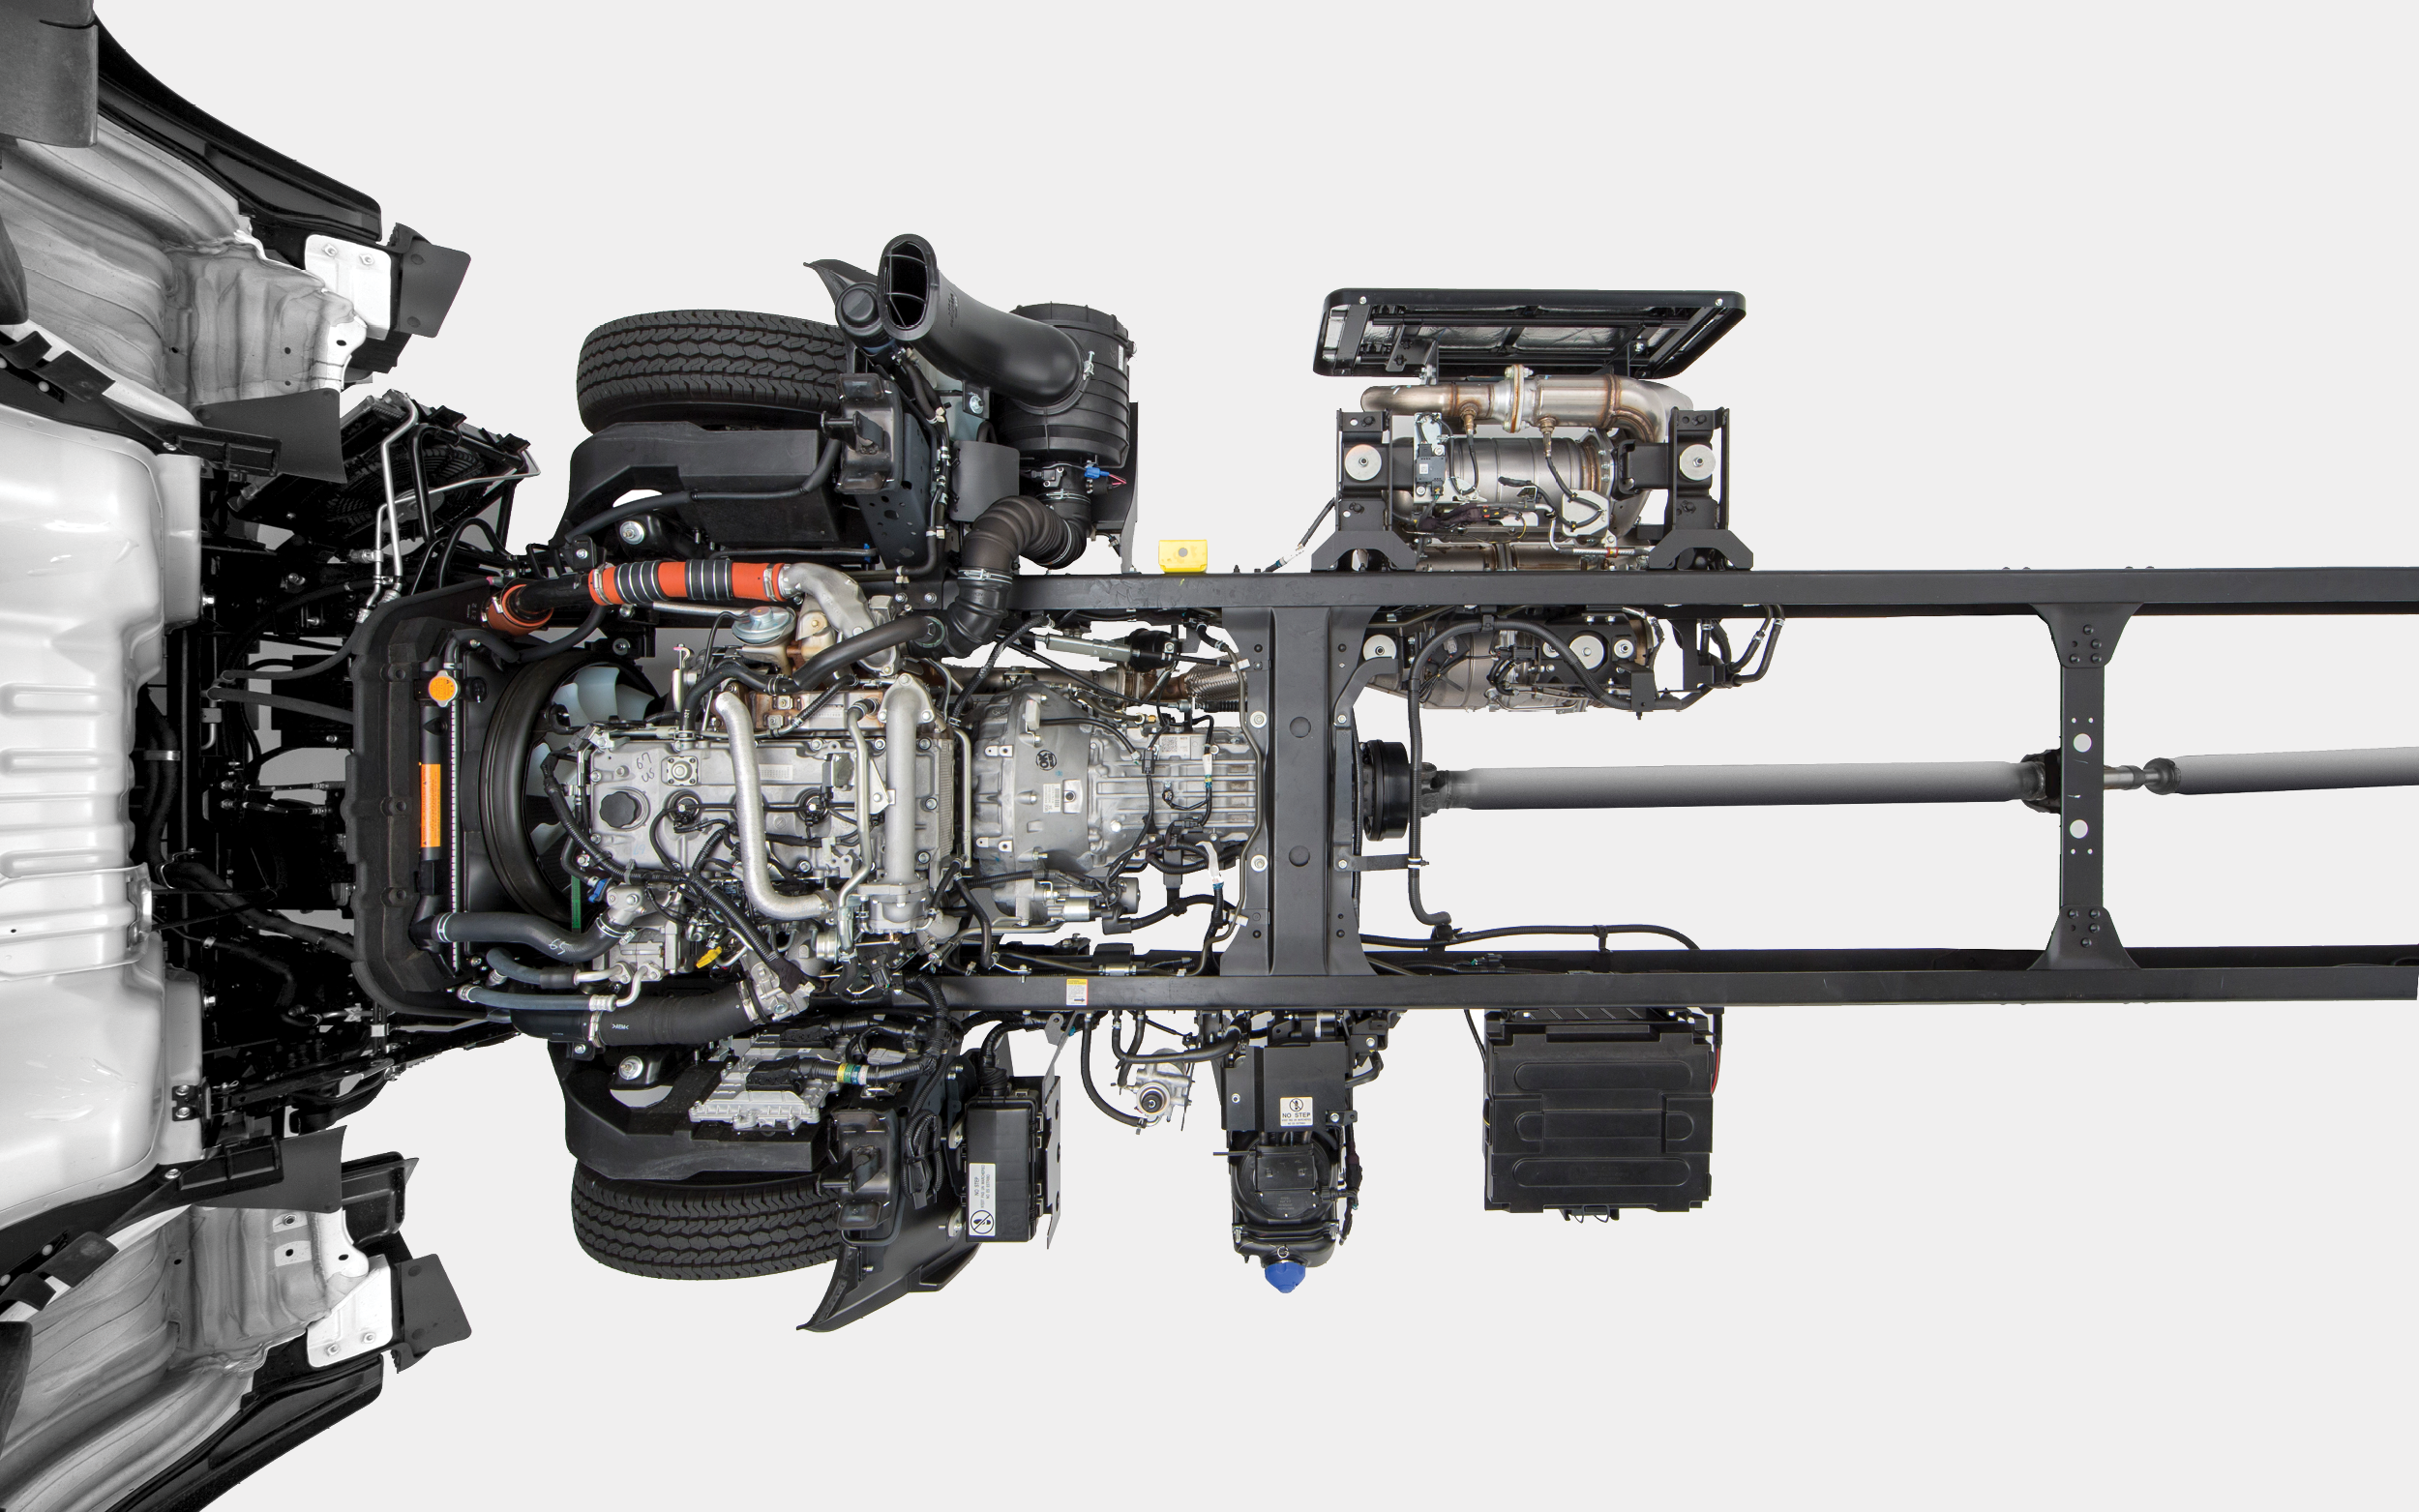 Birds Eye View of Chassis